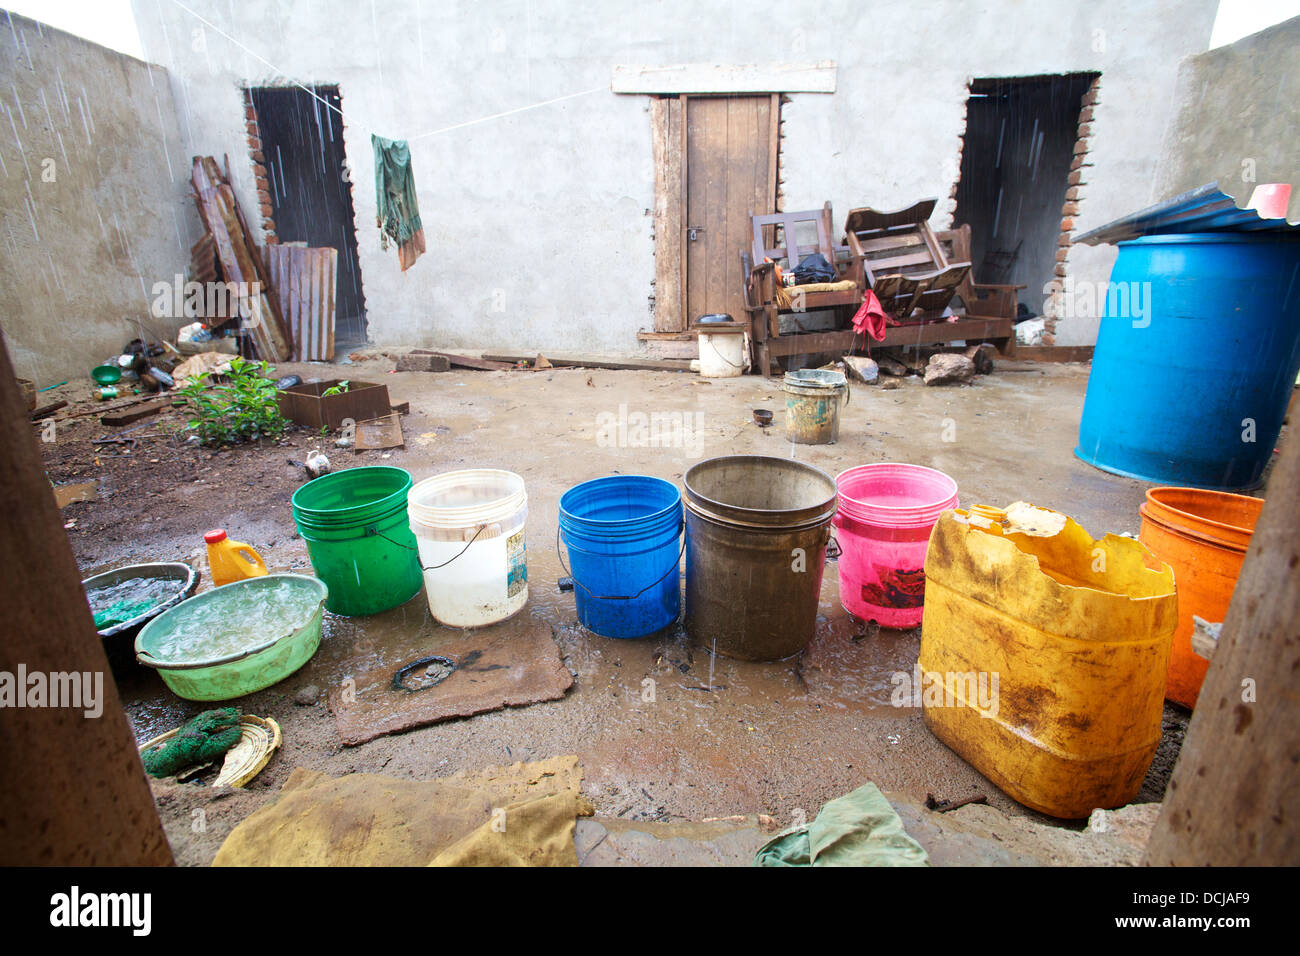 Buckets laid out in a courtyard to collect rainwater, Tanzania, Africa - Stock Image